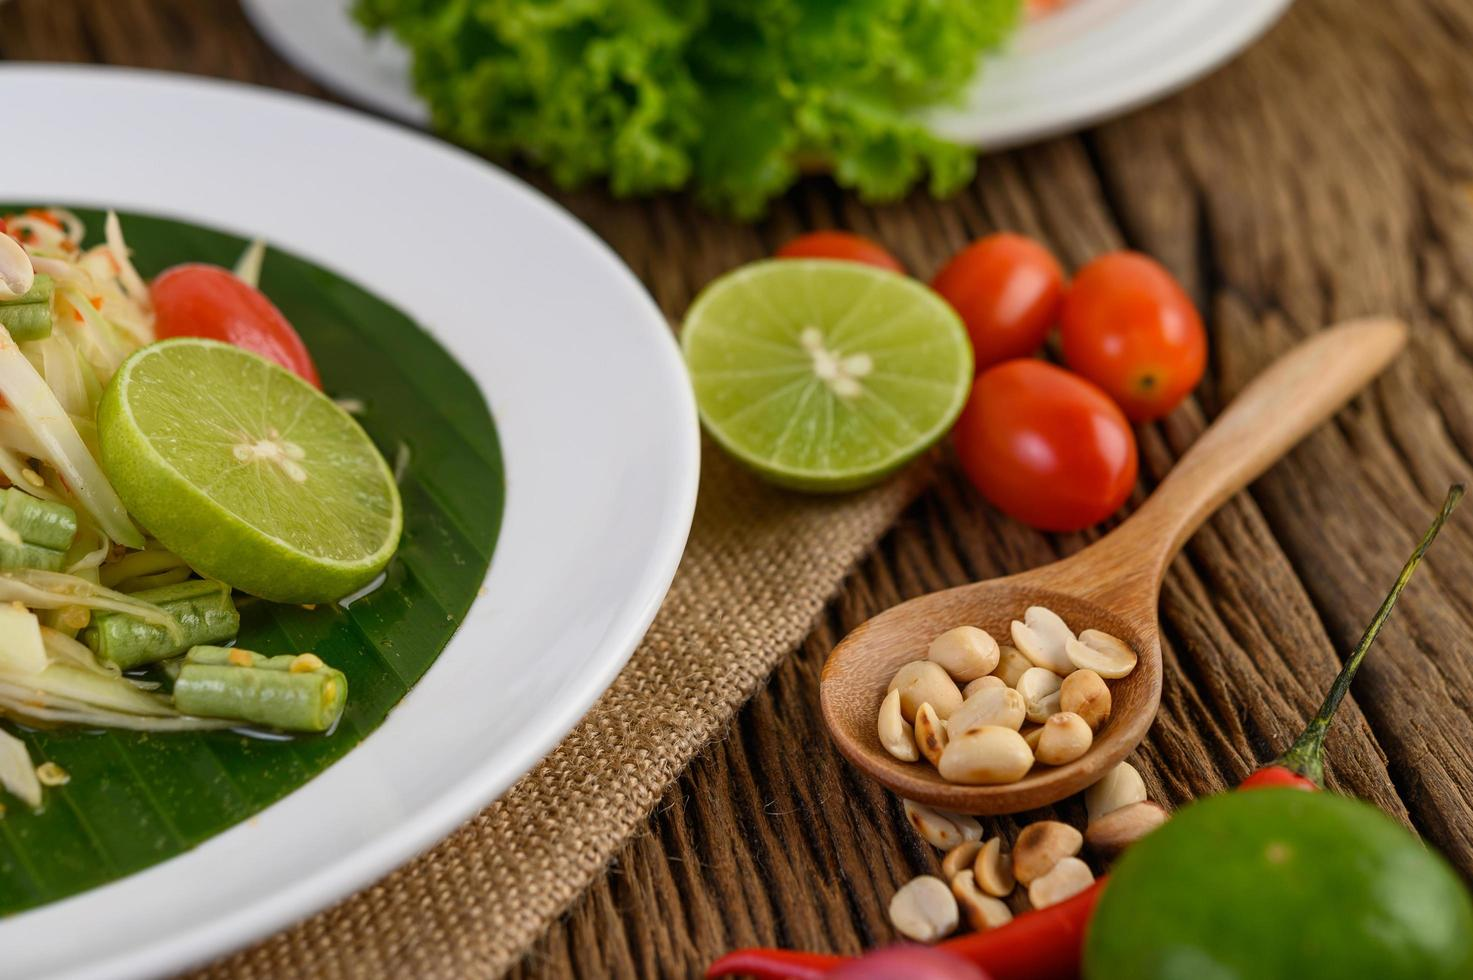 Thai style spicy food with garlic, lemon, peanuts, tomatoes, and shallots photo